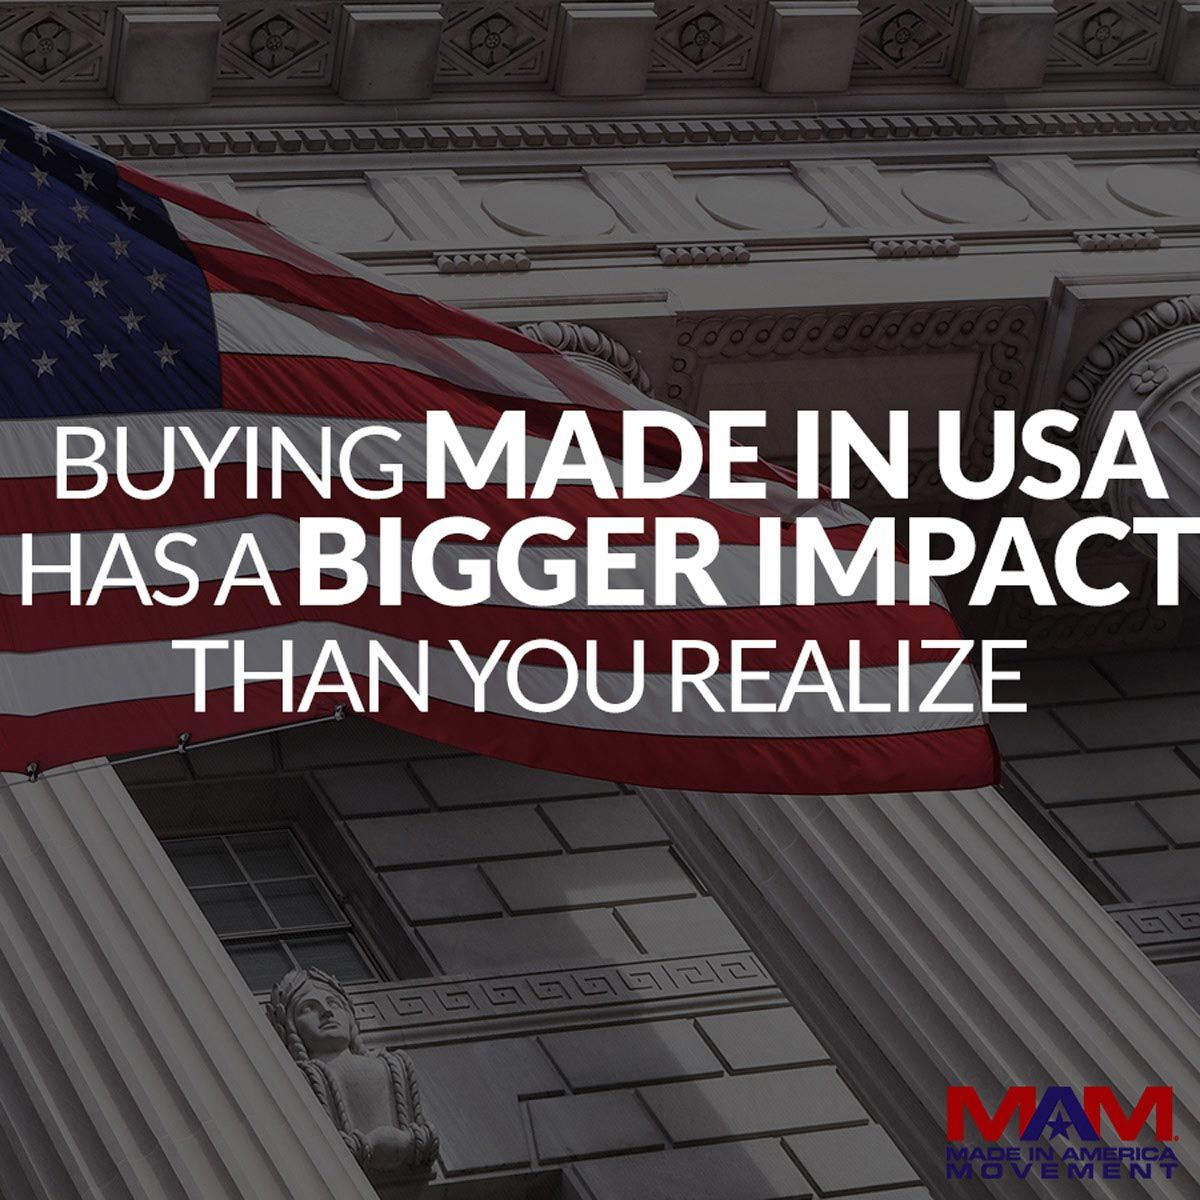 """""""Buying #AmericanMade products may be more than a feel-good choice.""""   Read why here and share your opinions.  What do you think?   https:// buff.ly/2UICkCc     via @KurtUhlir @USA_Movement #madeinAmerica #madeinUSA <br>http://pic.twitter.com/MyiwIPaxxG"""